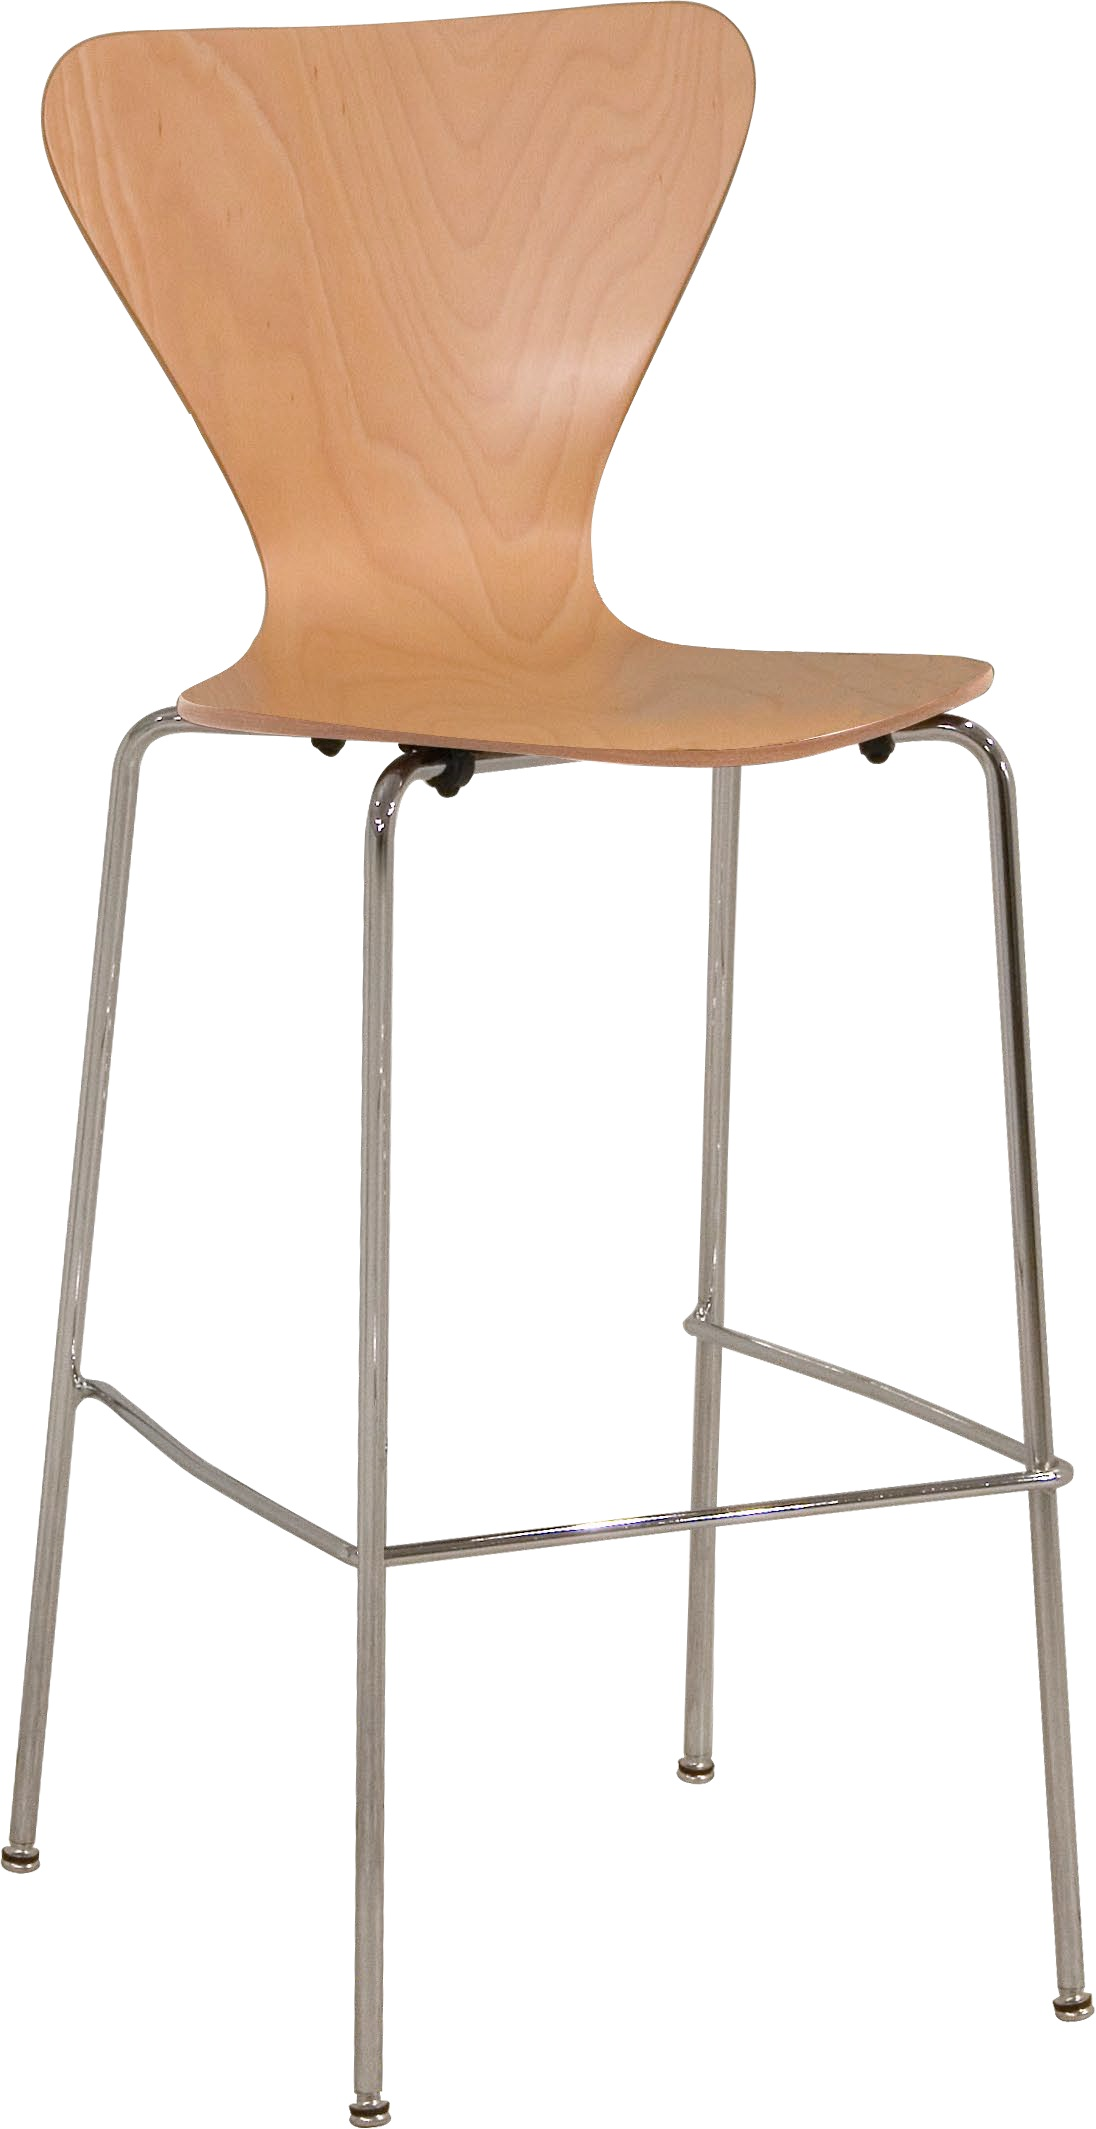 Bar Stool Heights Images Tall Outdoor Stools